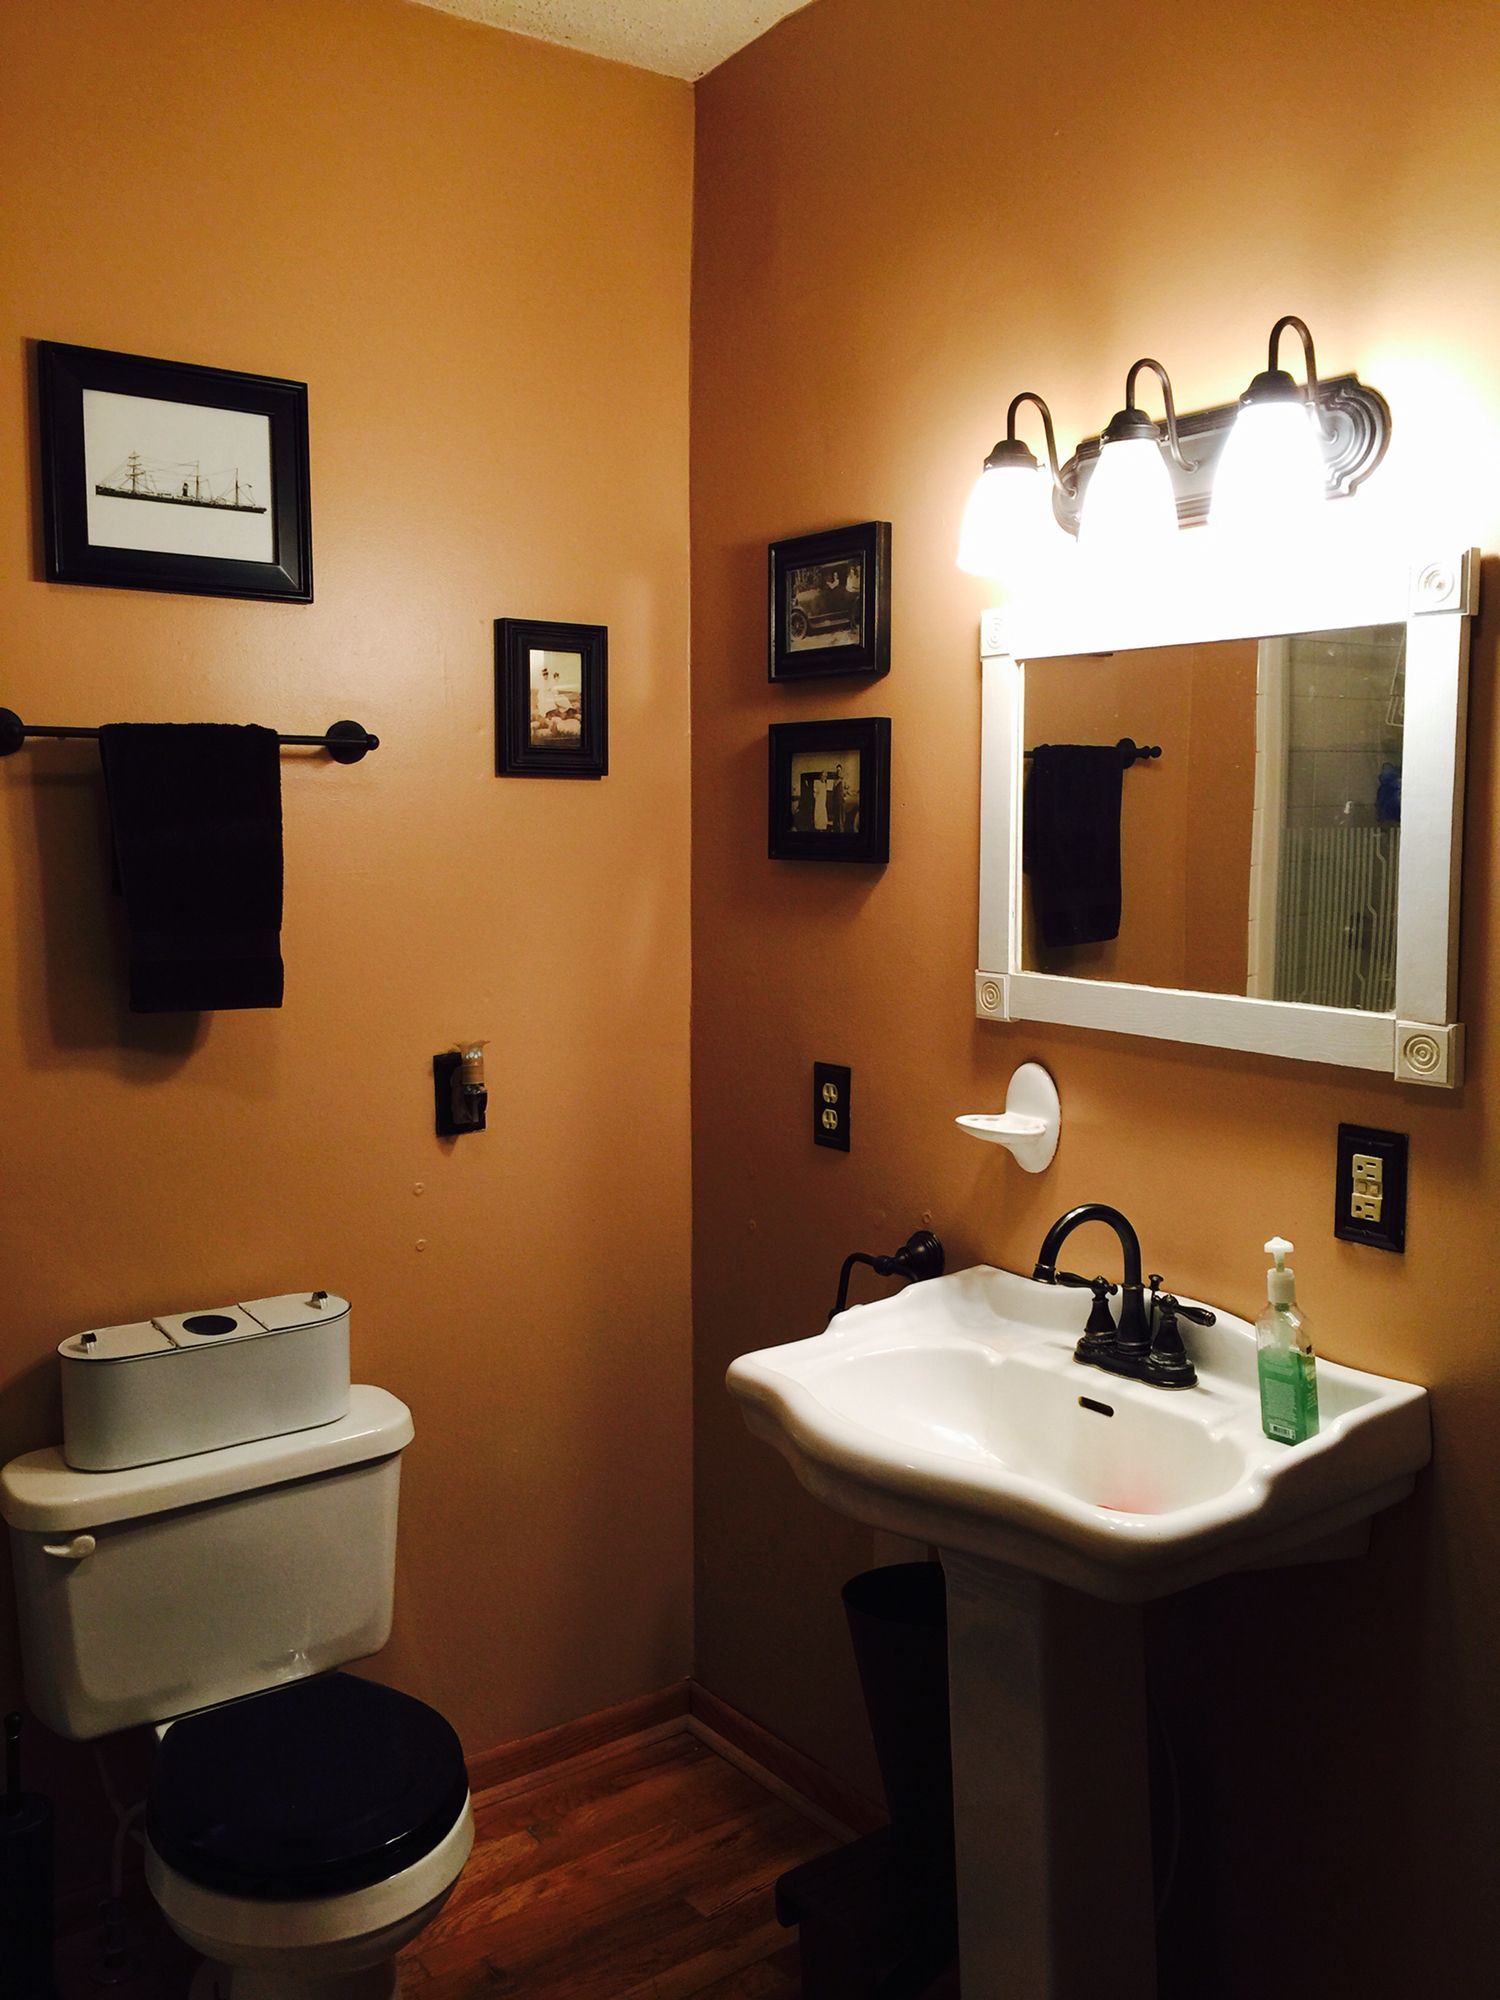 Old family photos make great bathroom decor in an old